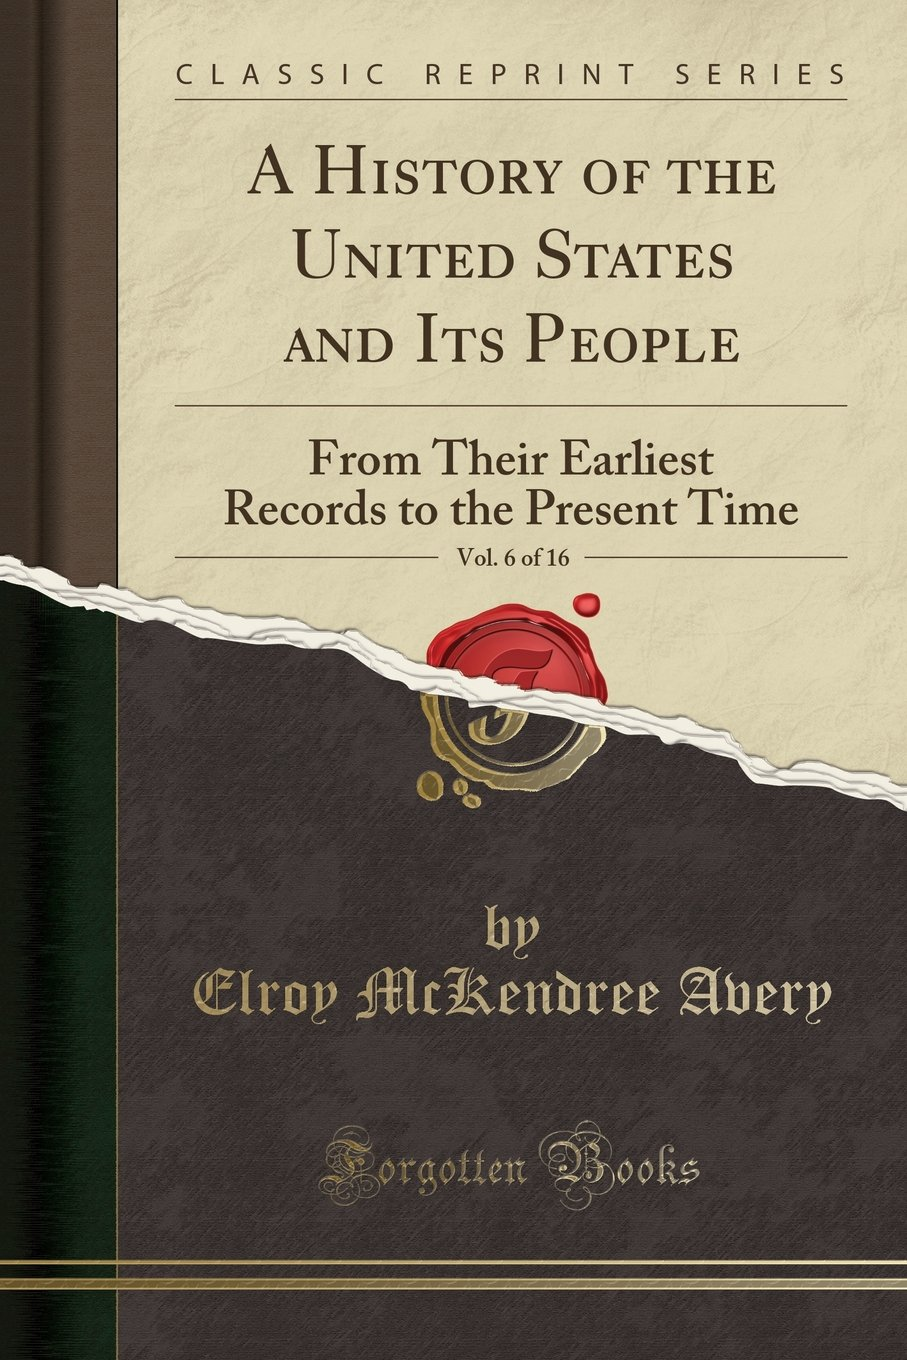 Download A History of the United States and Its People, Vol. 6 of 16: From Their Earliest Records to the Present Time (Classic Reprint) ebook